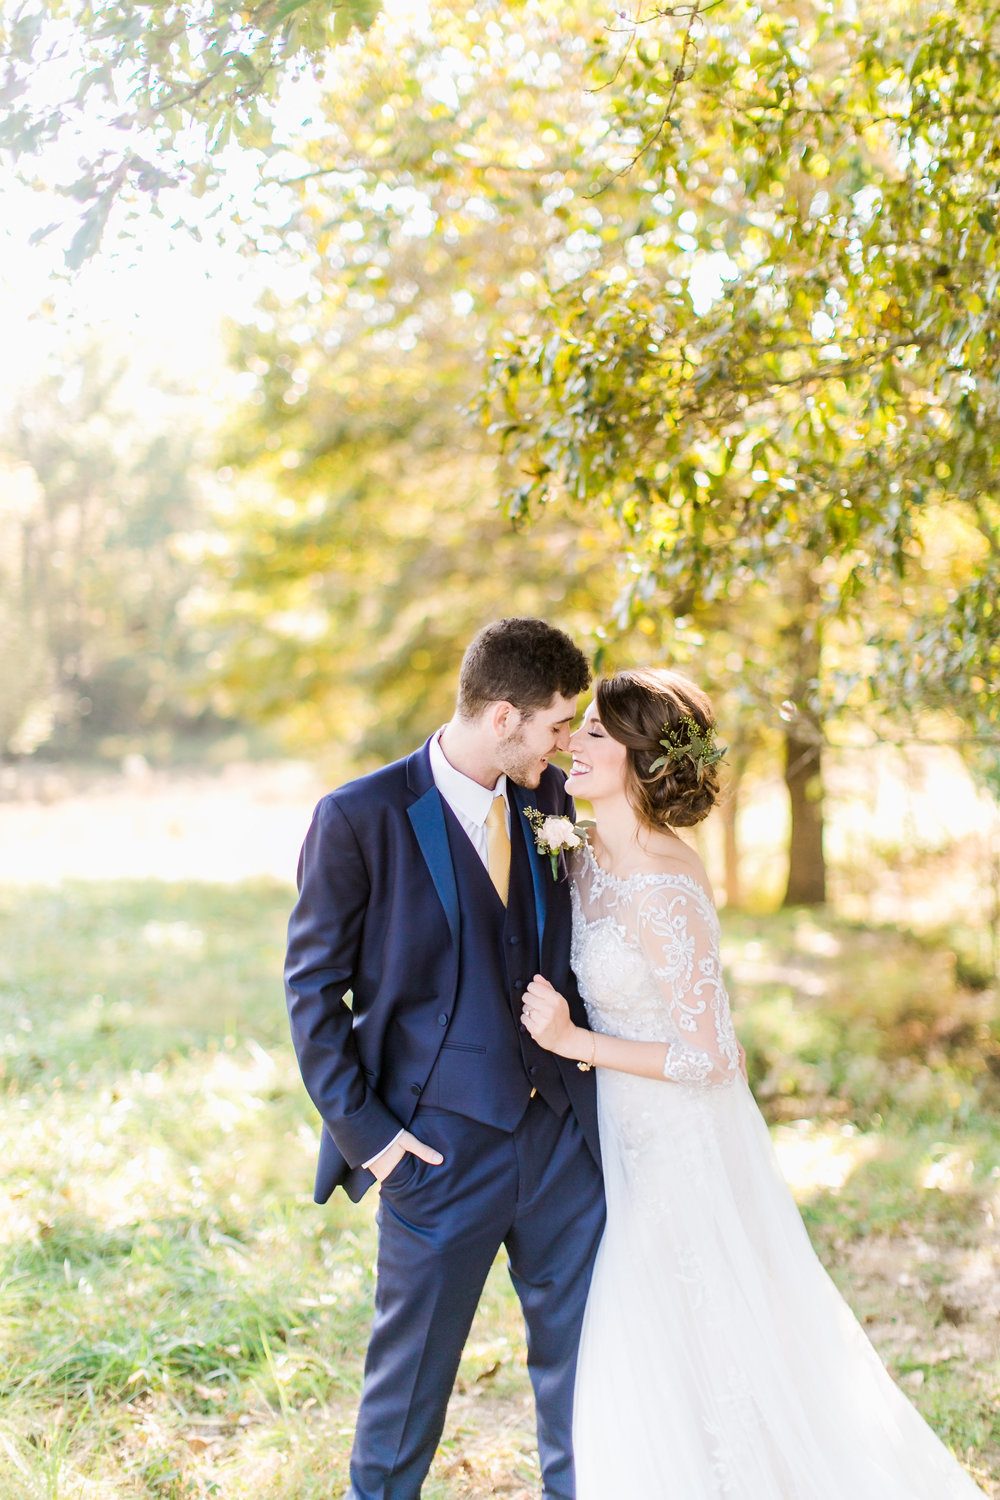 MissouriRusticWedding_StLouisWeddingPhotographer_AliciaDan_CatherineRhodesPhotography-1696-Edit.jpg